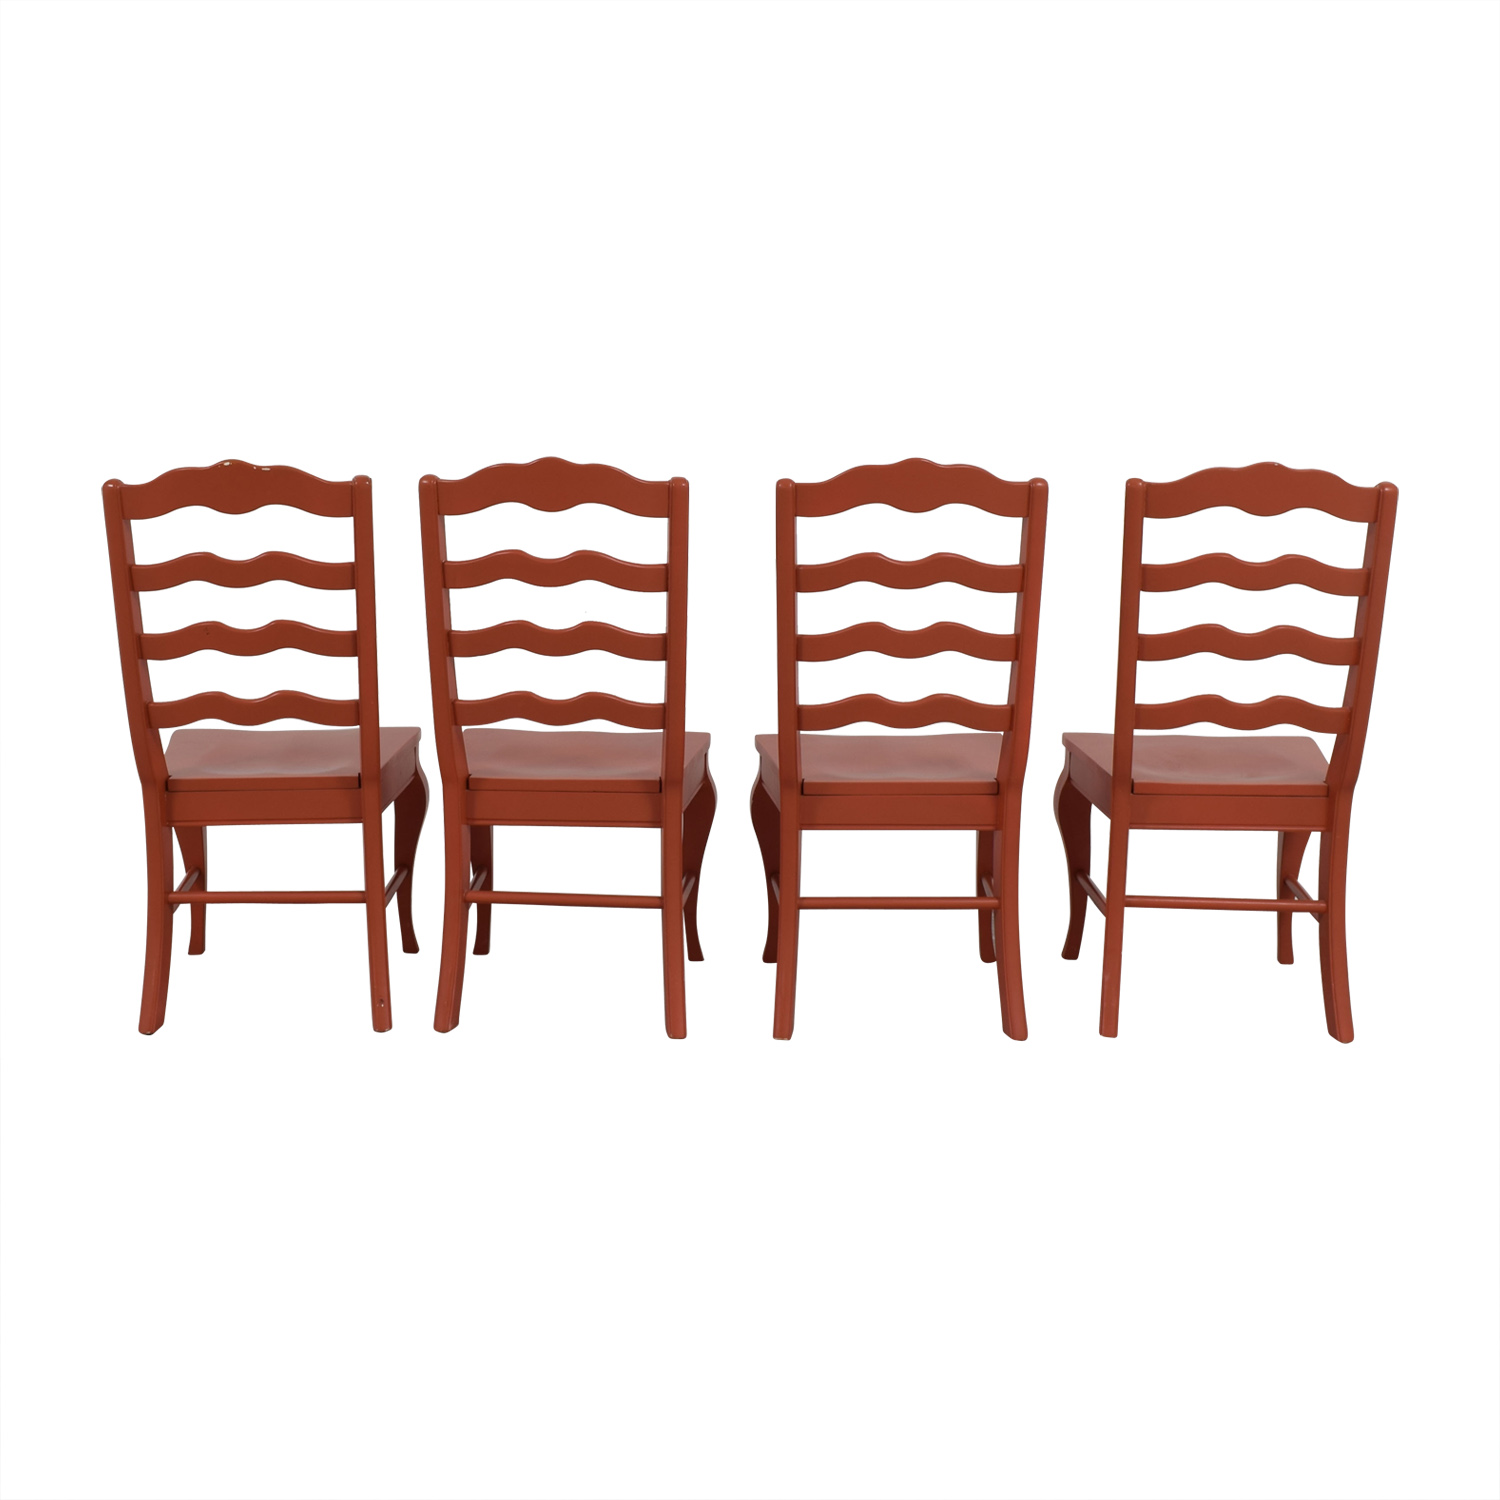 Broyhill Broyhill Dining Room Chairs nj